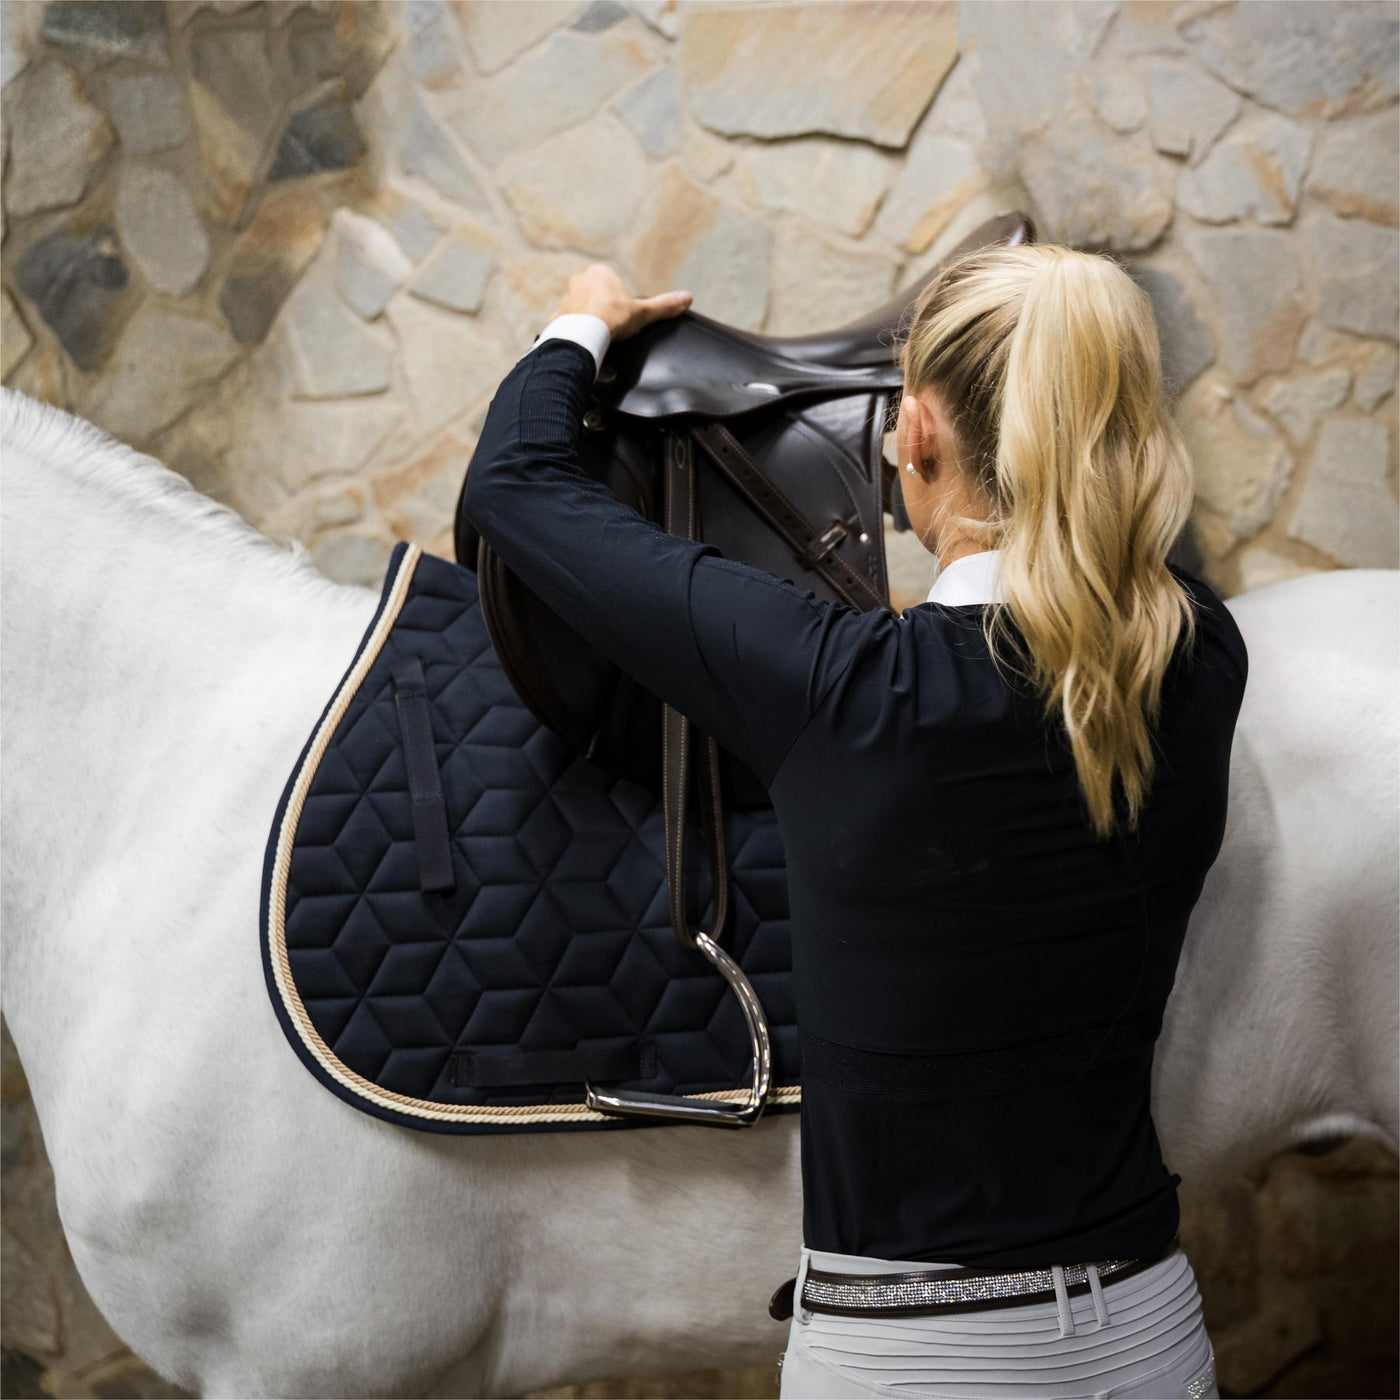 How to find the right saddle pad